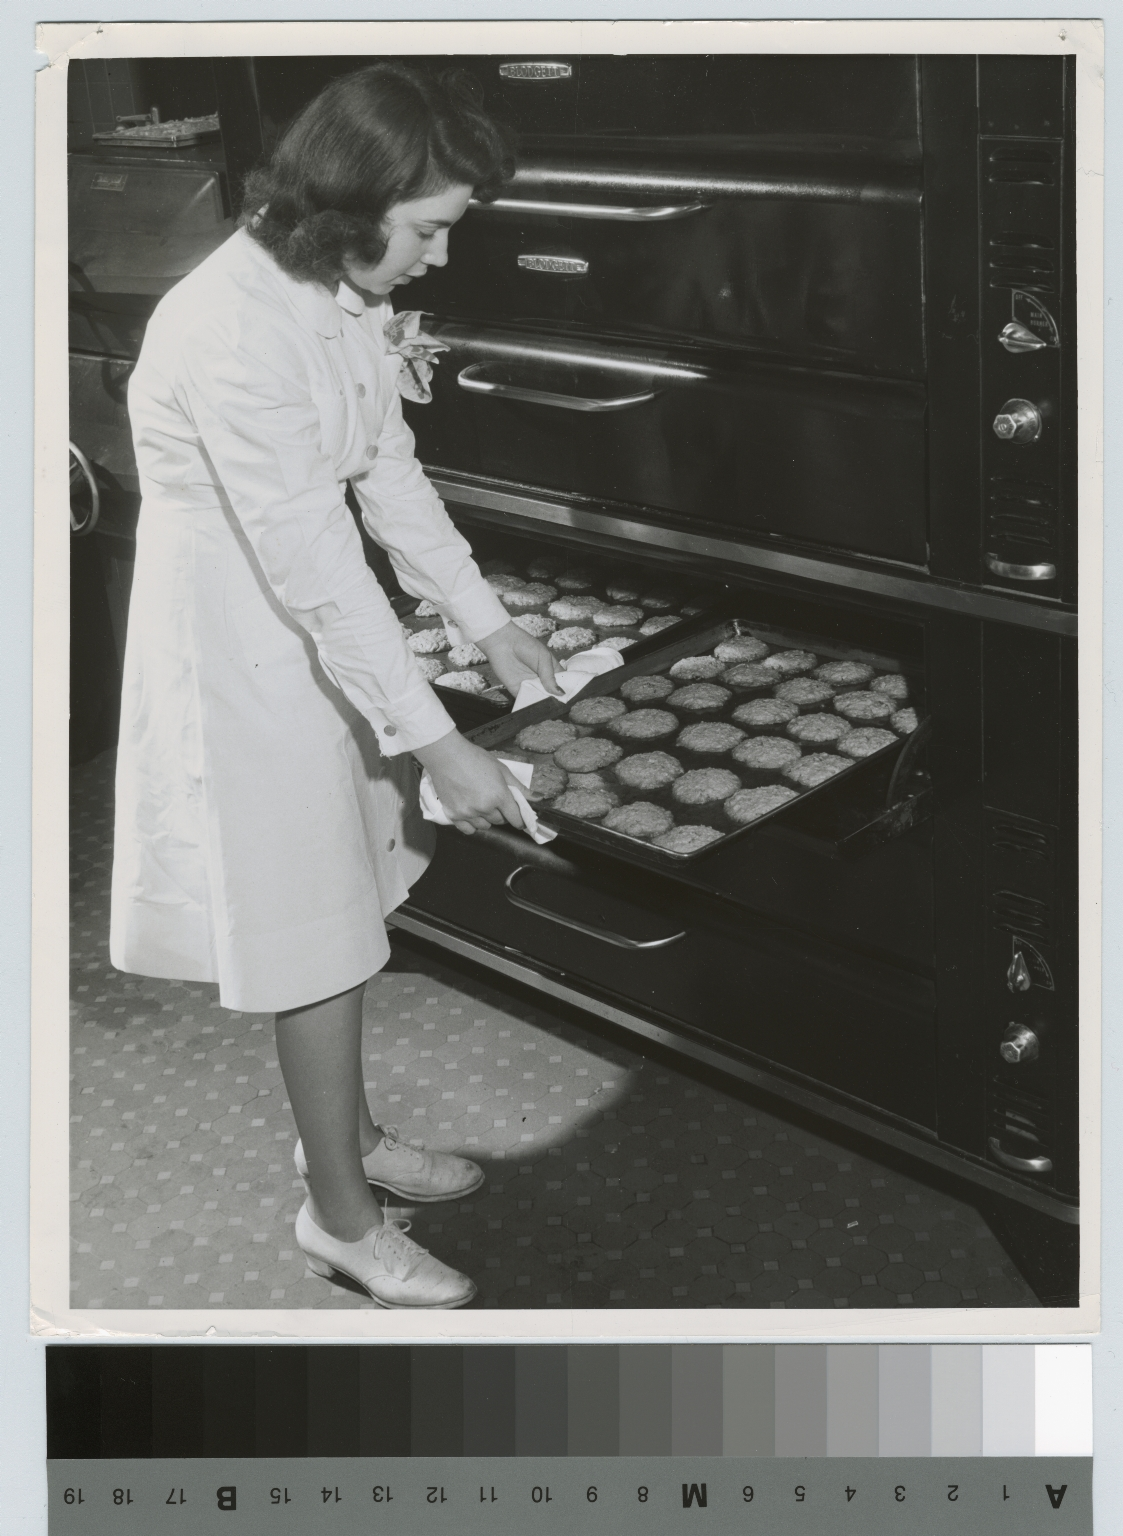 Academics, Food Administration student, Marian Kaufman, removing cookie sheet from oven, 1942.